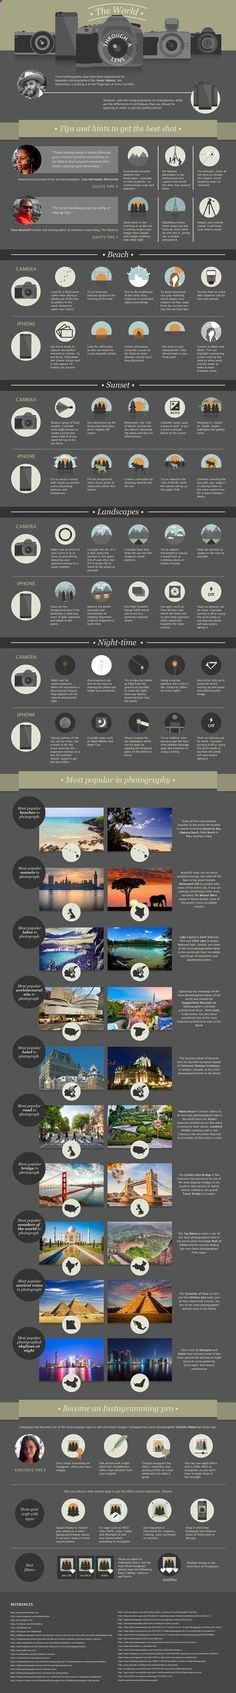 Fairmont Hotels infographic guide to shooting holiday photos plus how to Instagram like a pro | Daily Mail Onlinehttp://www.dailymail.stfi.re/travel/travel_news/article-2931290/Experts-reveal-ultimate-travel-photography-tips.html?sf=goxwbkd